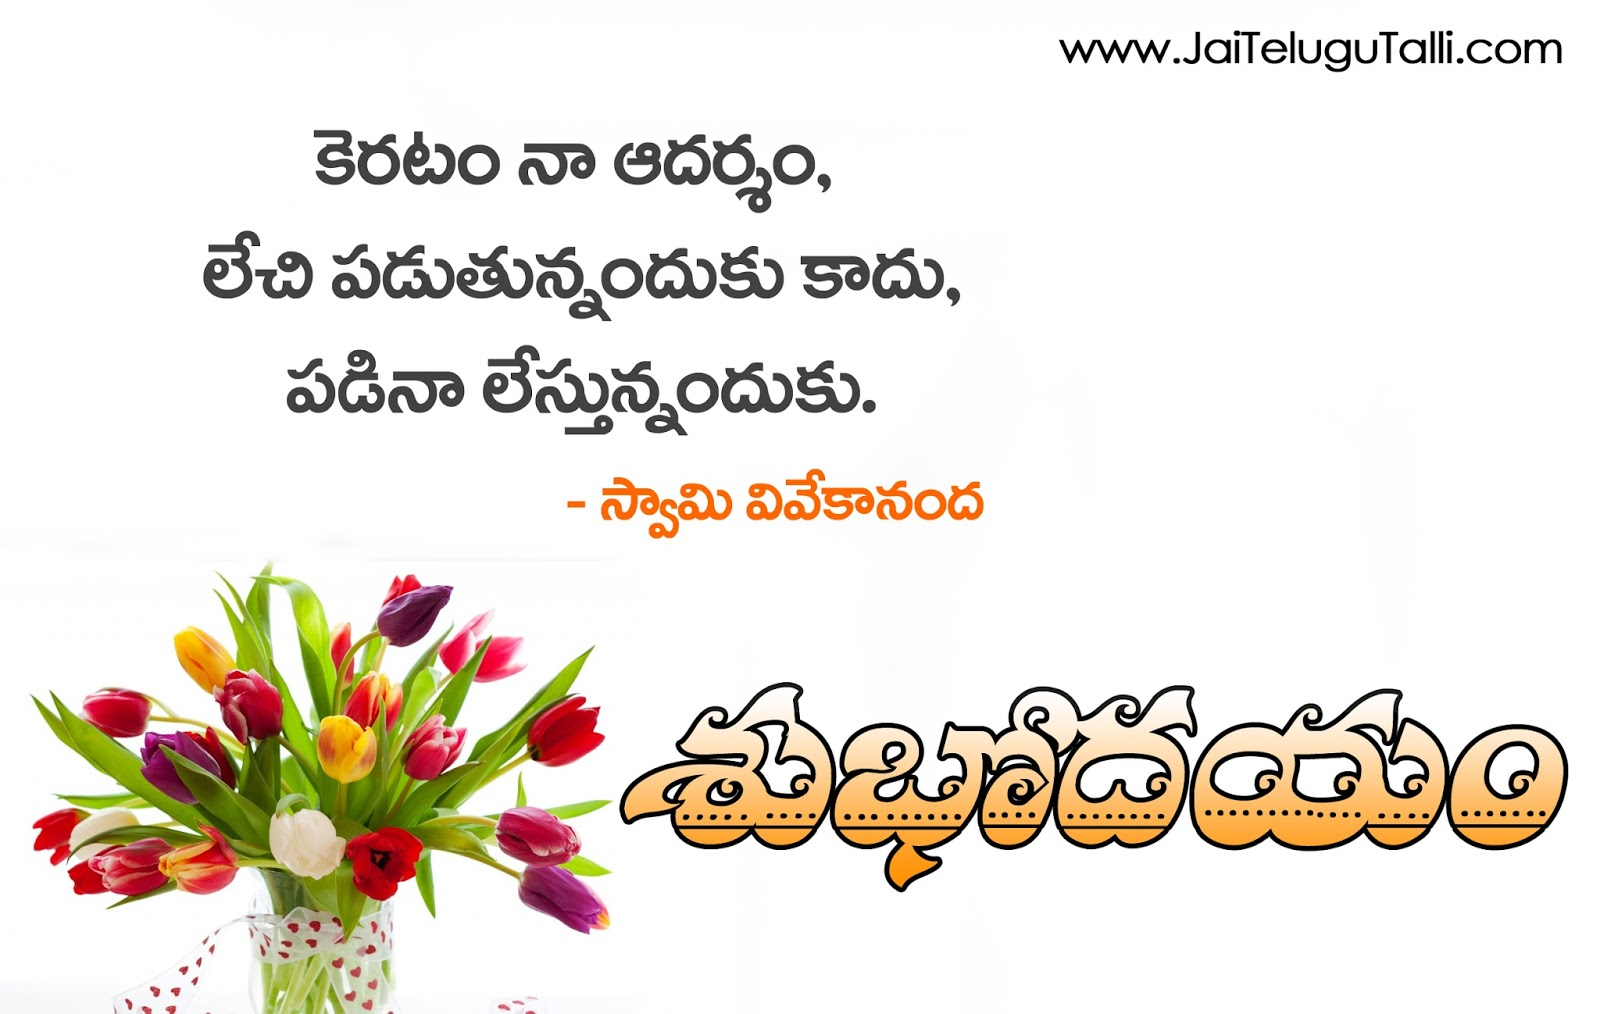 Beautiful flowers images with quotes in telugu love quotes everyday good morning wishes and quotes in telugu with nice flower images izmirmasajfo Image collections